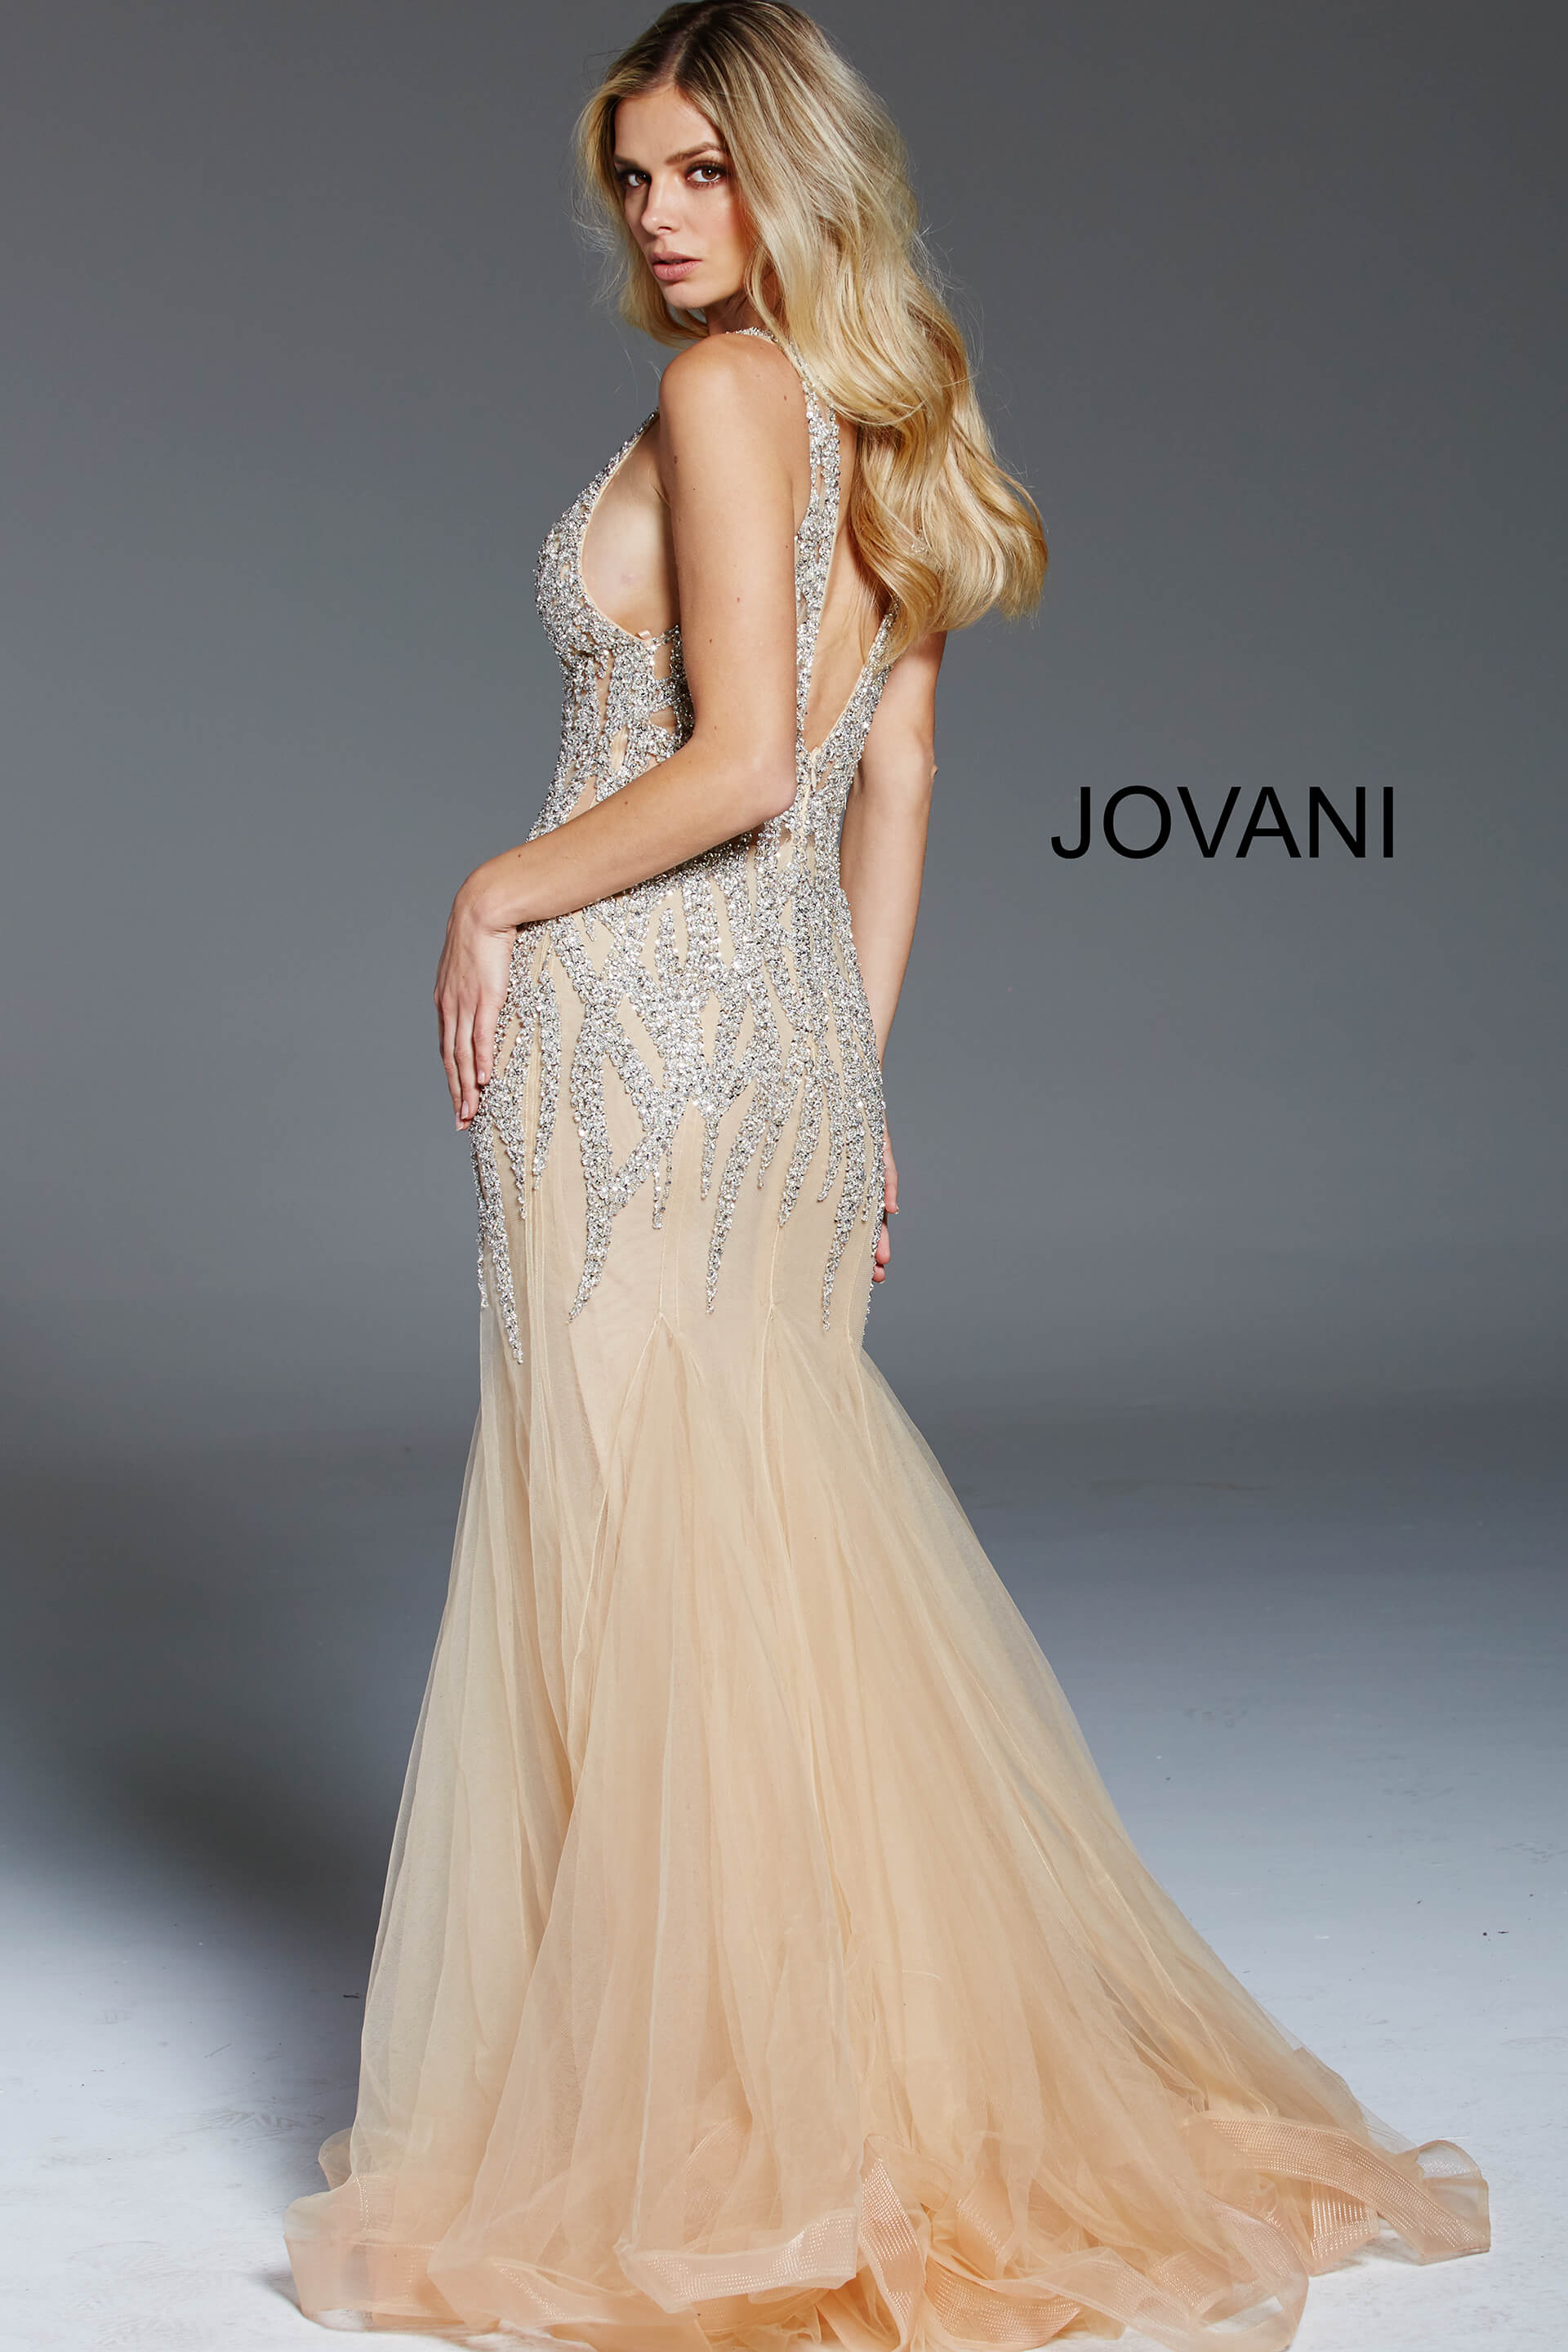 Jovani silver and nude sleeveless formal gown 59717 on mobile 2